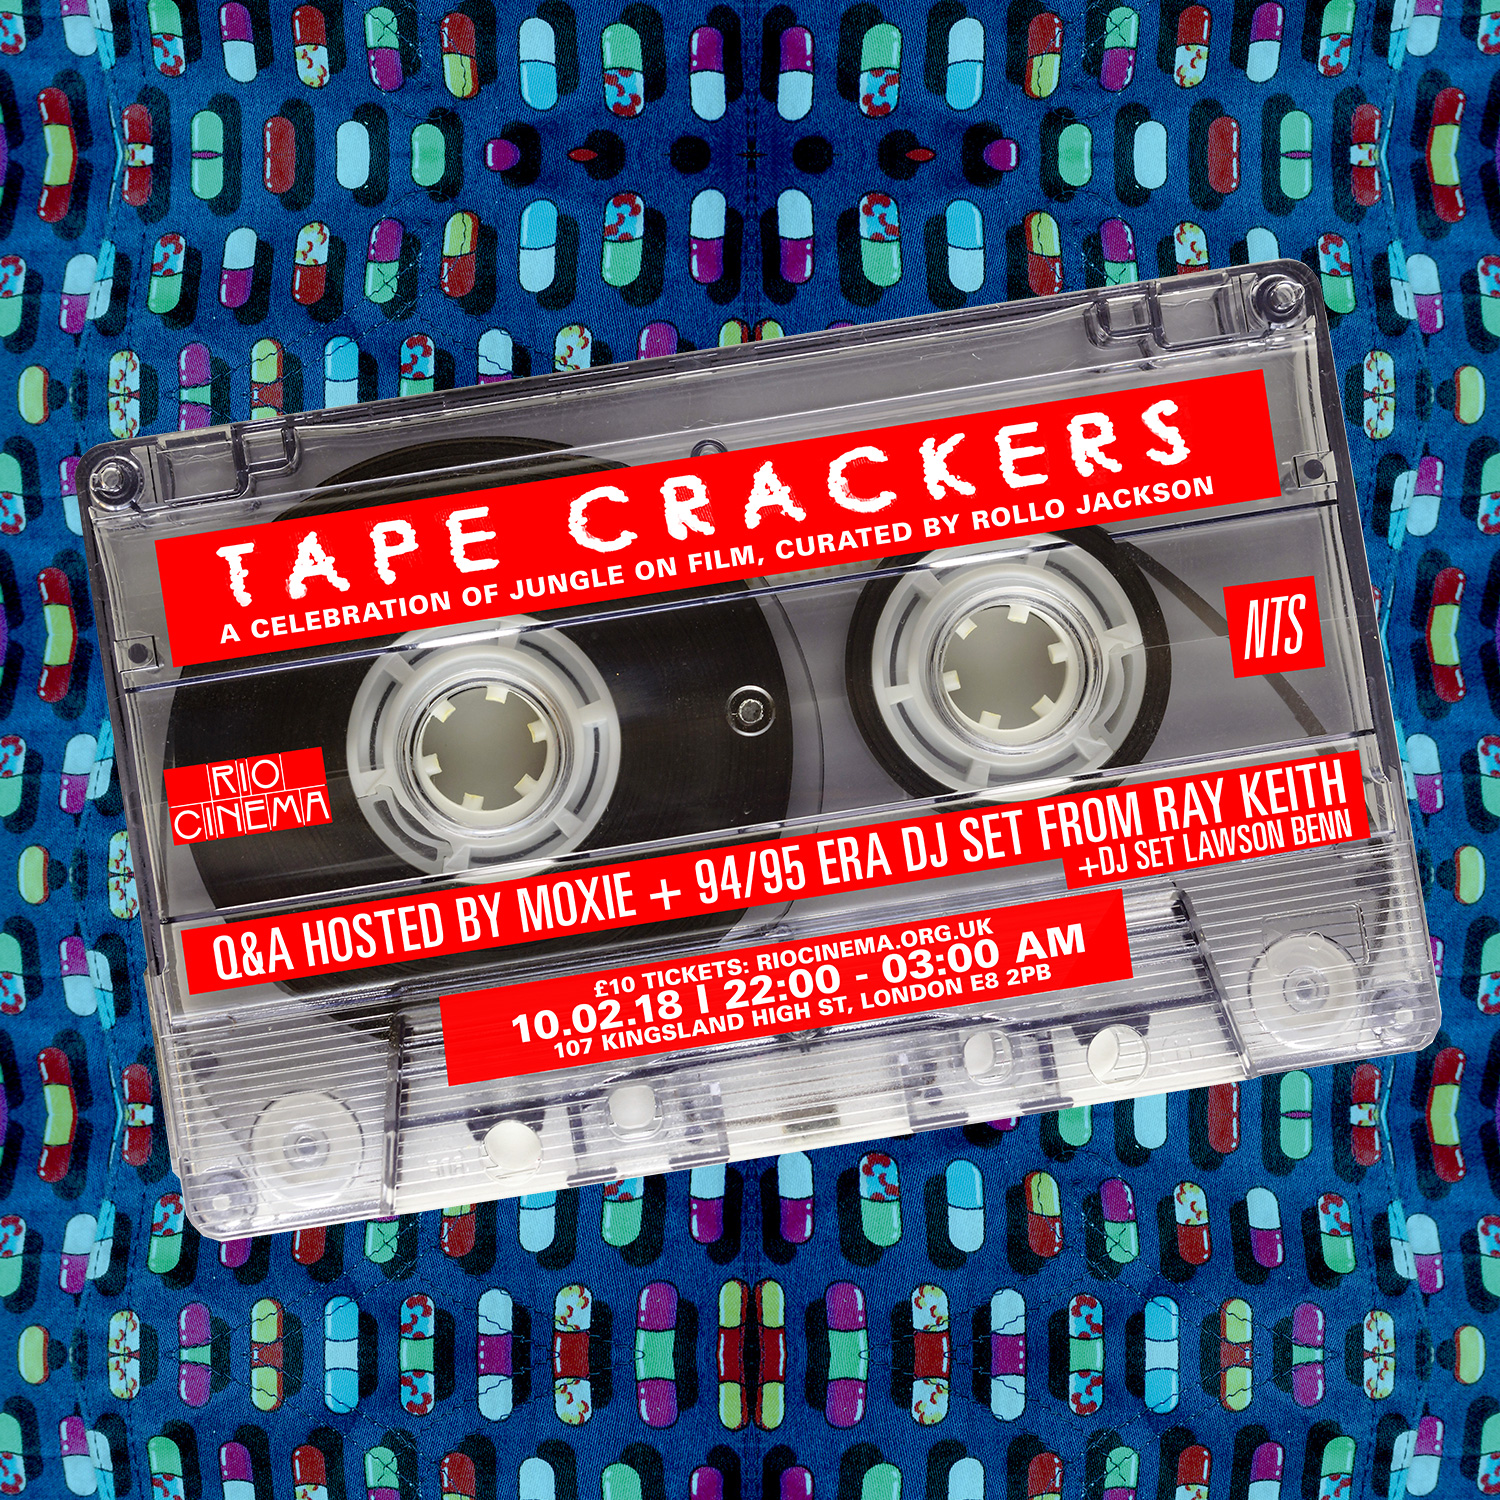 Instagram---Tape-Crackers-by-Rollo-Jackson-NTS-Movie-Night-Artwork (2).jpg